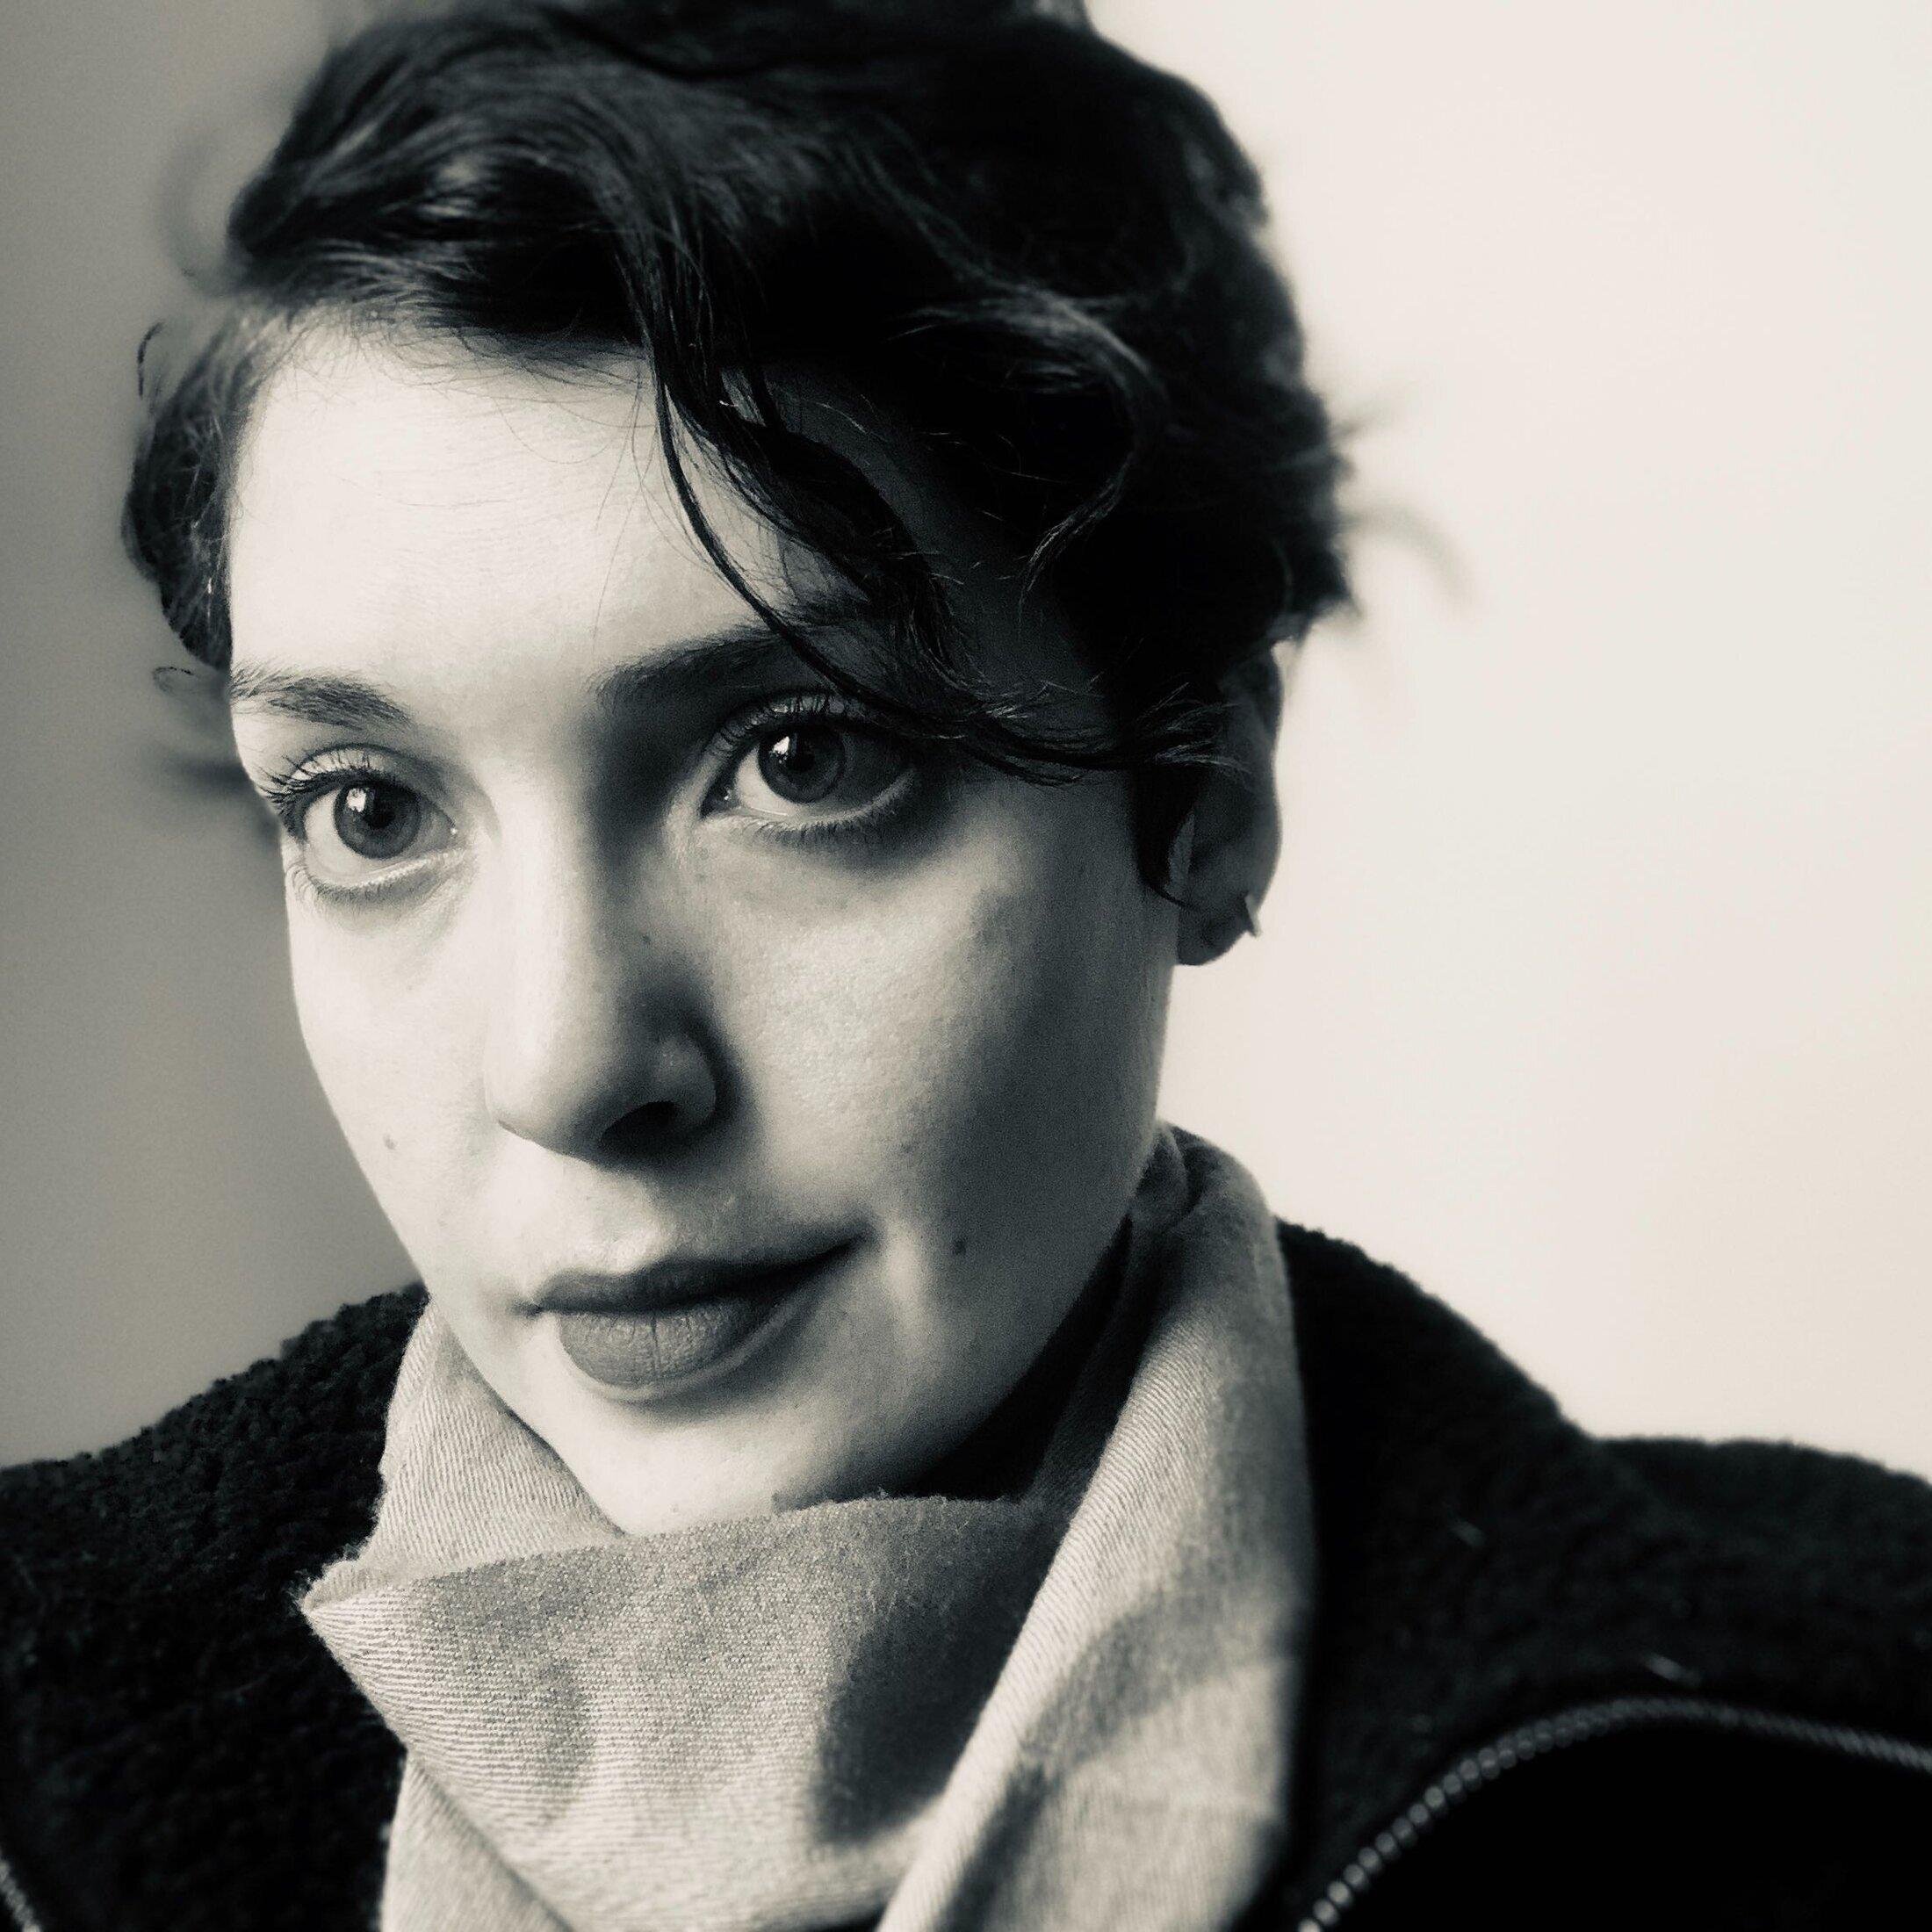 - Lauren Friedlander is a writer from Kansas living in NYC. She won the 2018 PEN/Dau Short Story Prize for Emerging Writers, has fiction in The Rumpus and SLICE, and is currently at work on a collection of short stories and a novel.